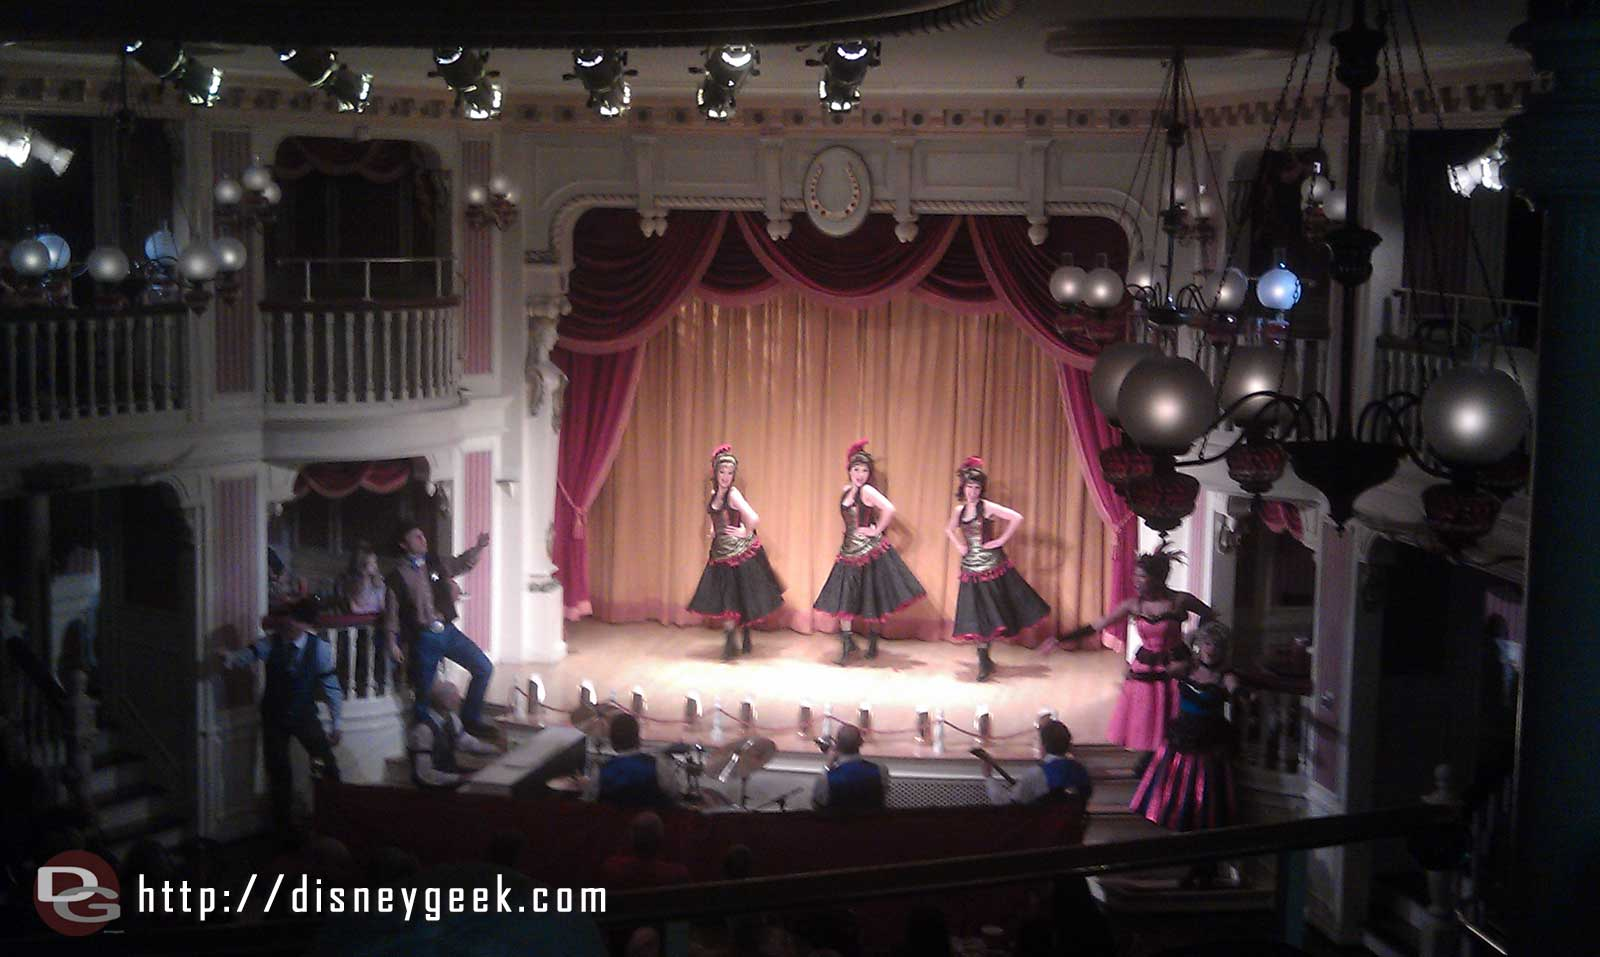 Enjoying the Tribute to the Golden Horseshoe Revue one last time.  #LimitedTimeMagic